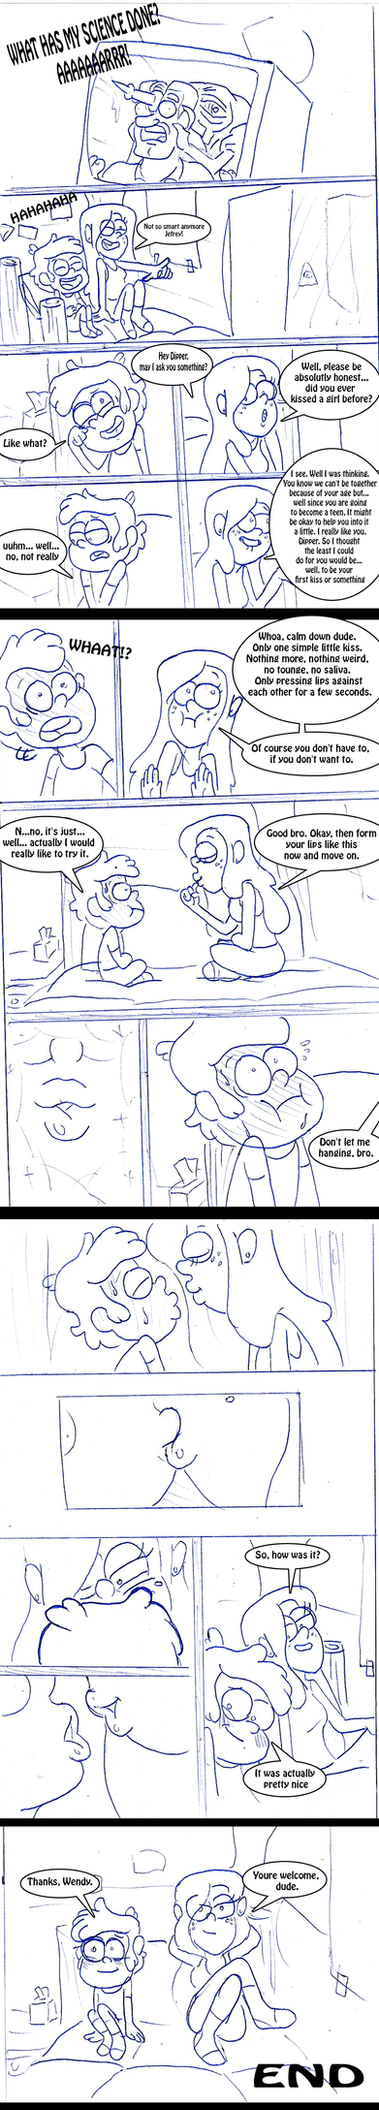 Sketch Comic Dippers first Kiss by toongrowner